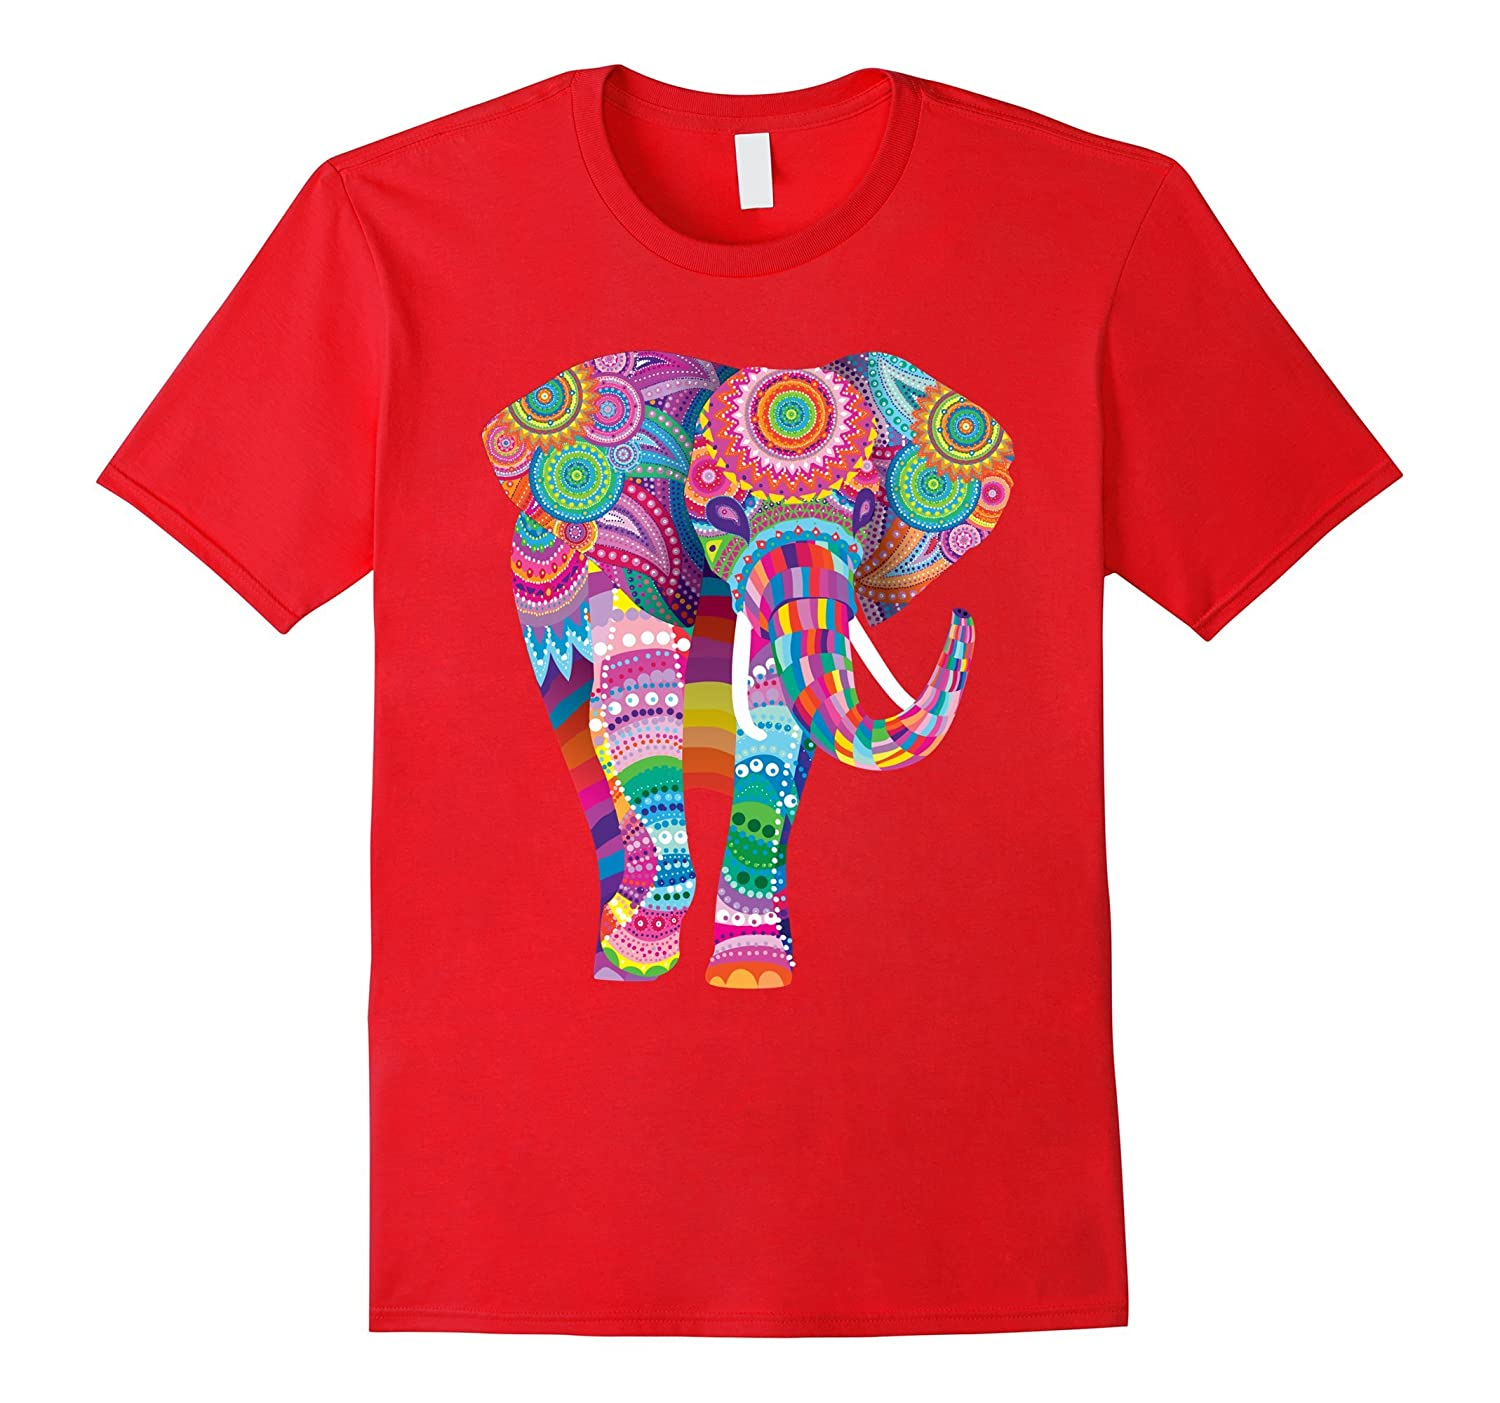 colorful awesome elephant tee. Birthday or holiday gift idea-FL